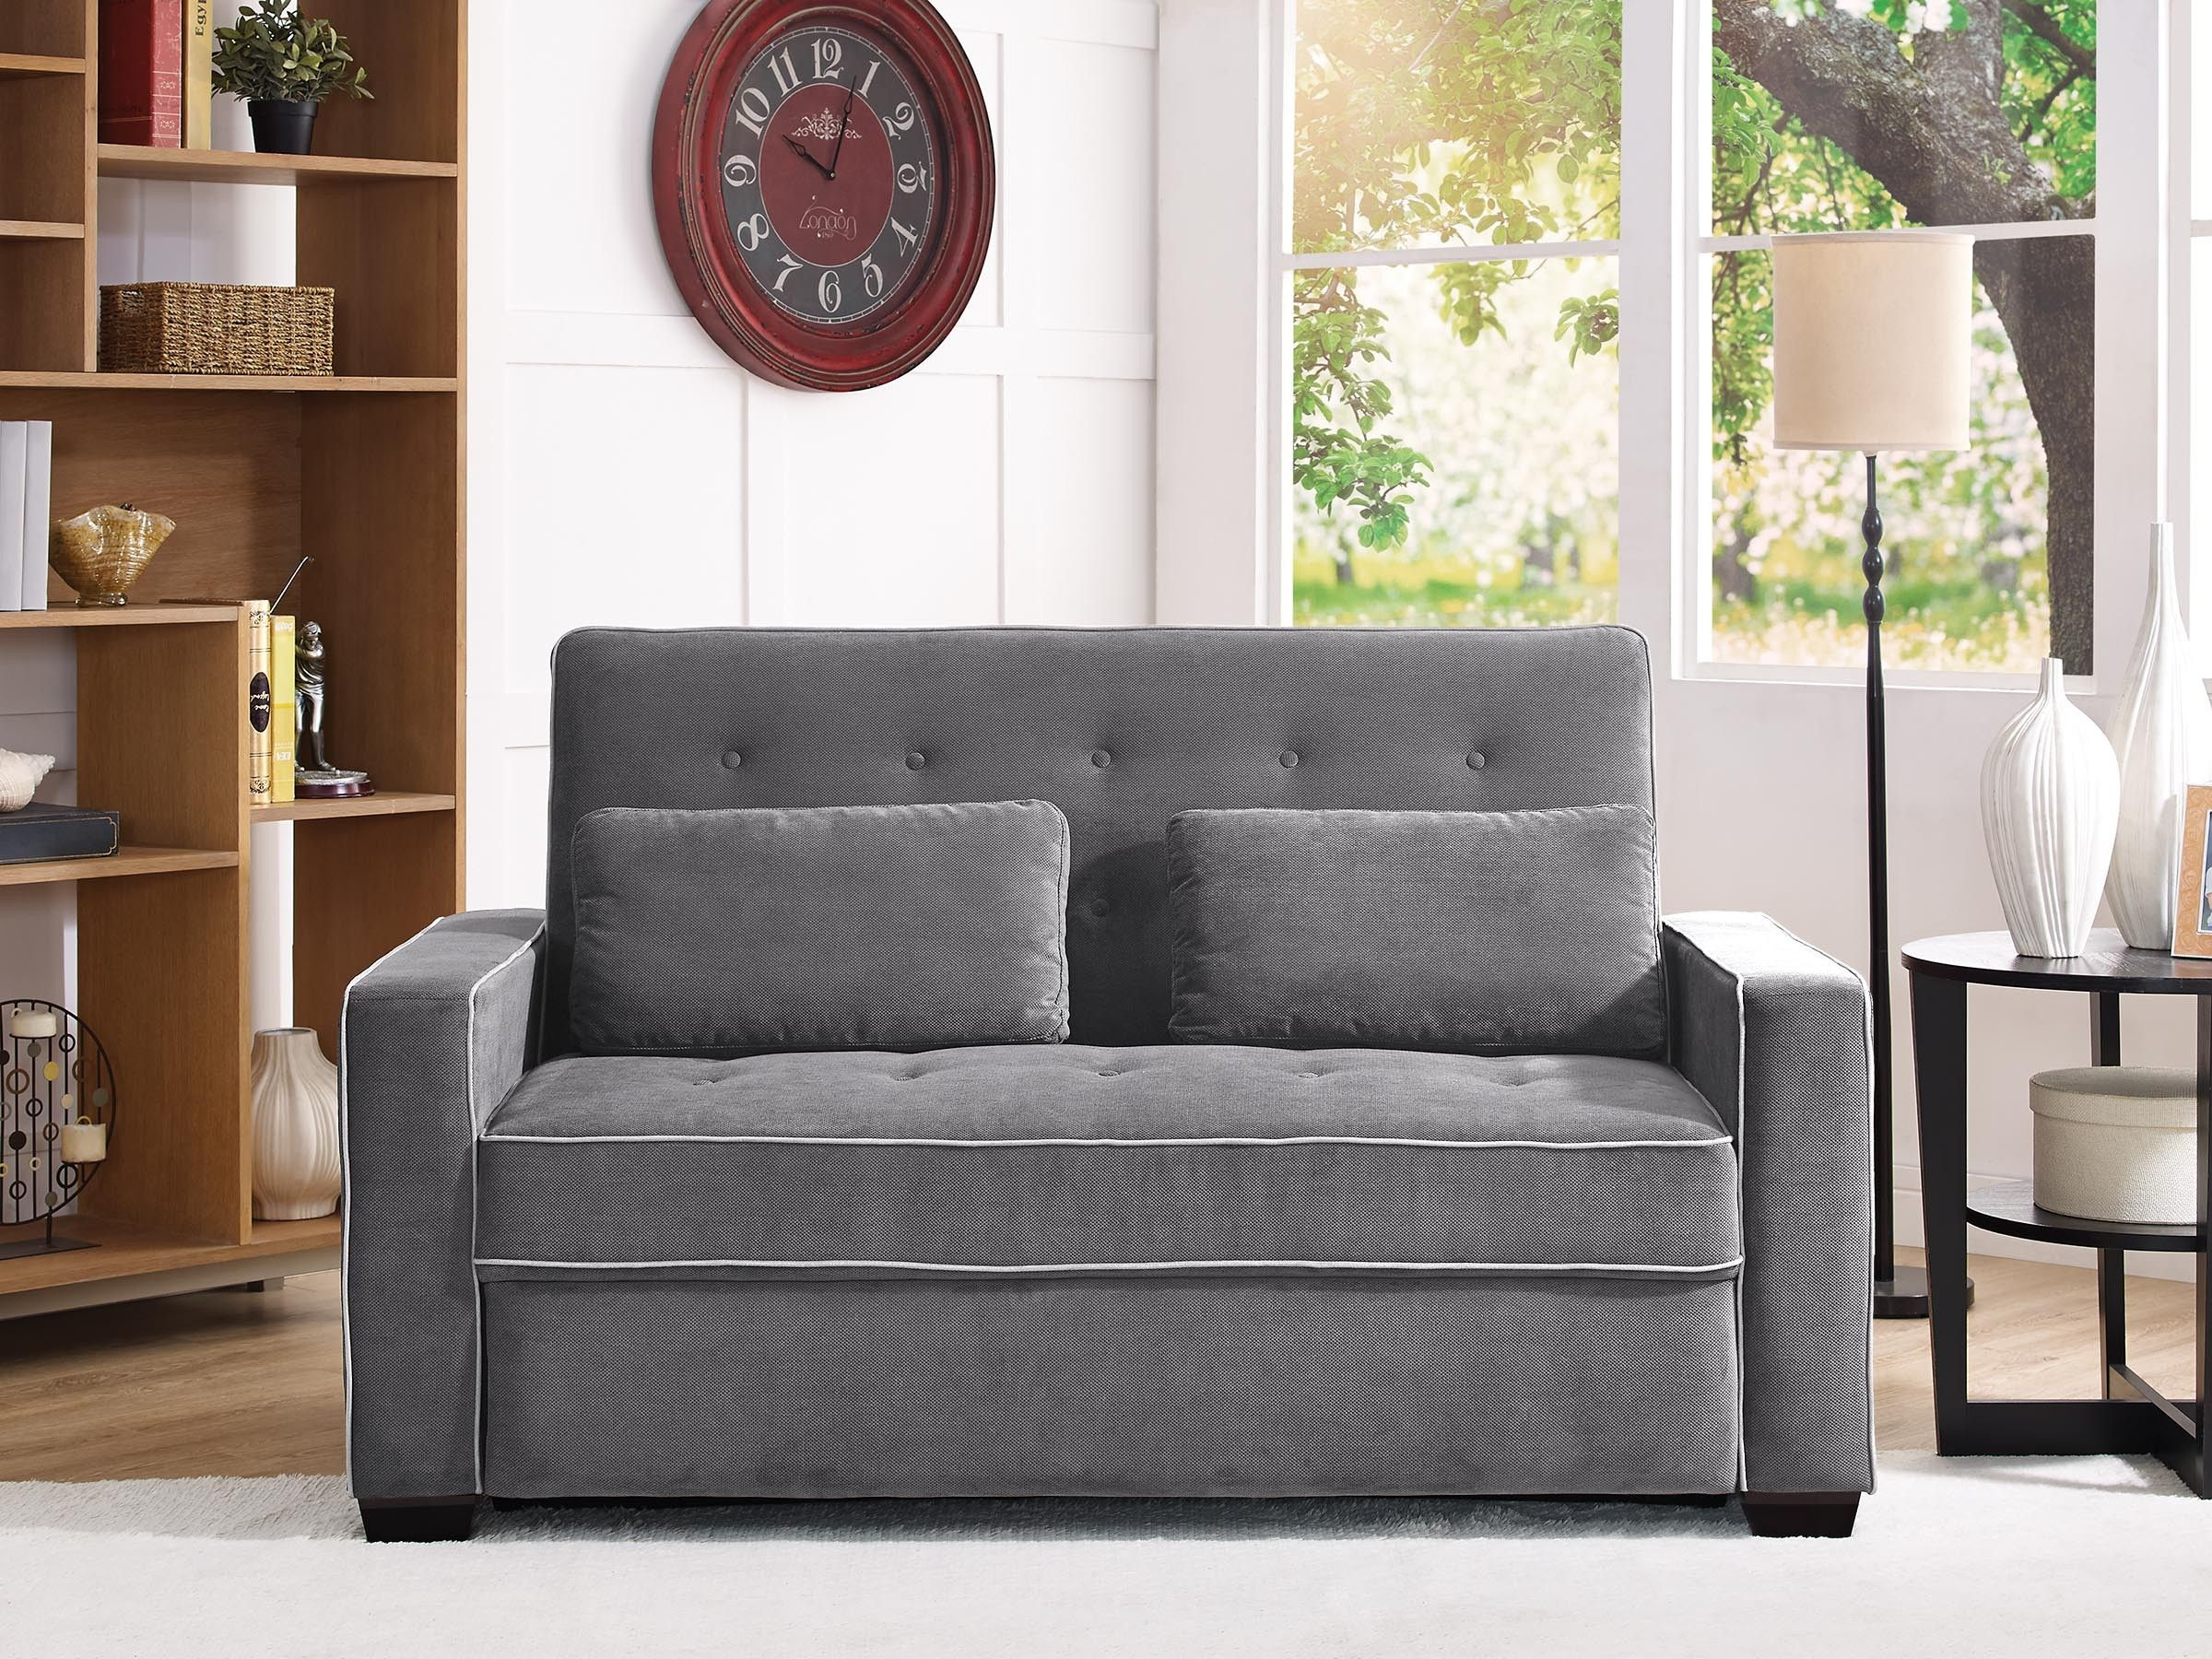 Augustine (Queen) Pull out bed, Queen beds, Futon couch